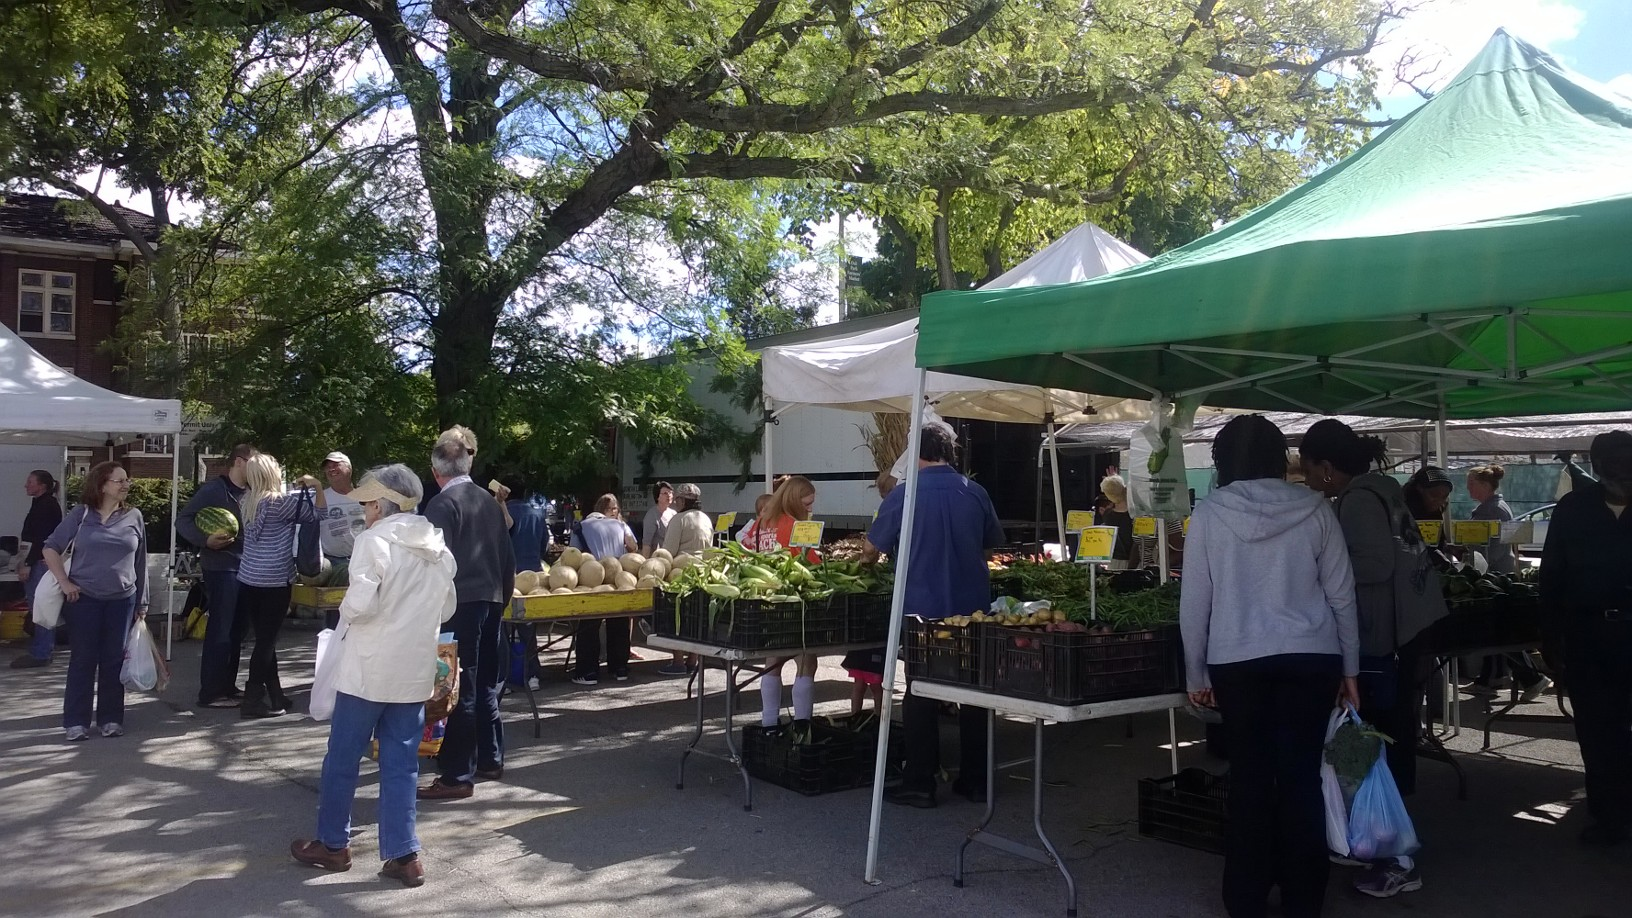 A view of the farmers market